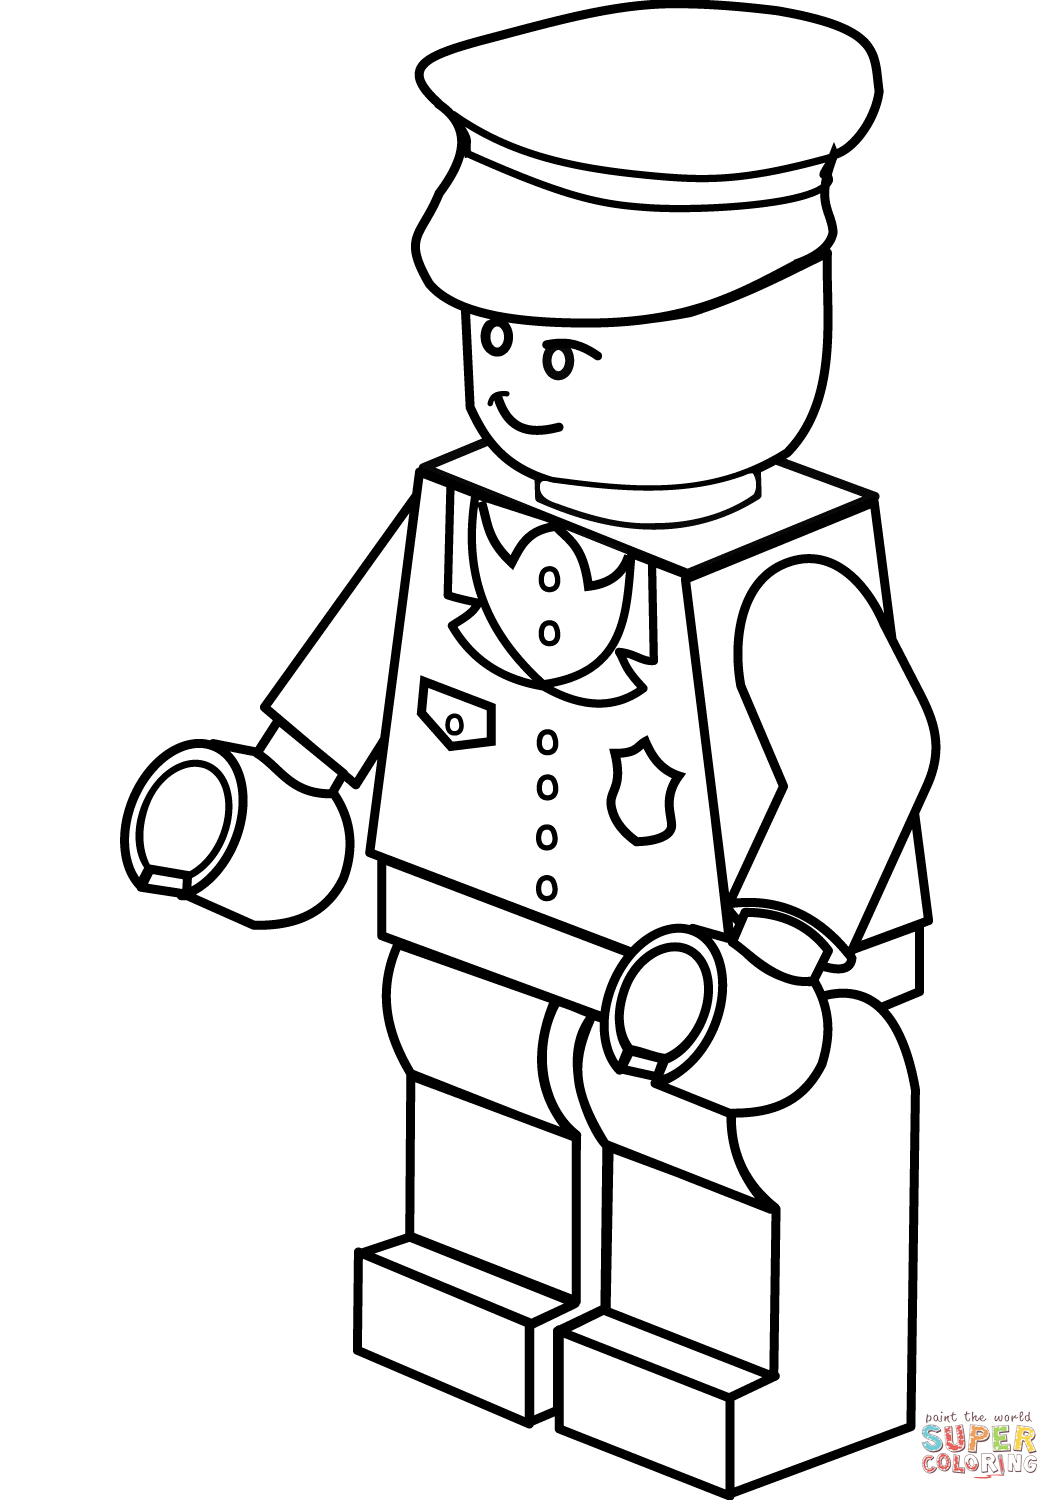 1060x1500 Lego Policeman Coloring Page Free Printable Coloring Pages